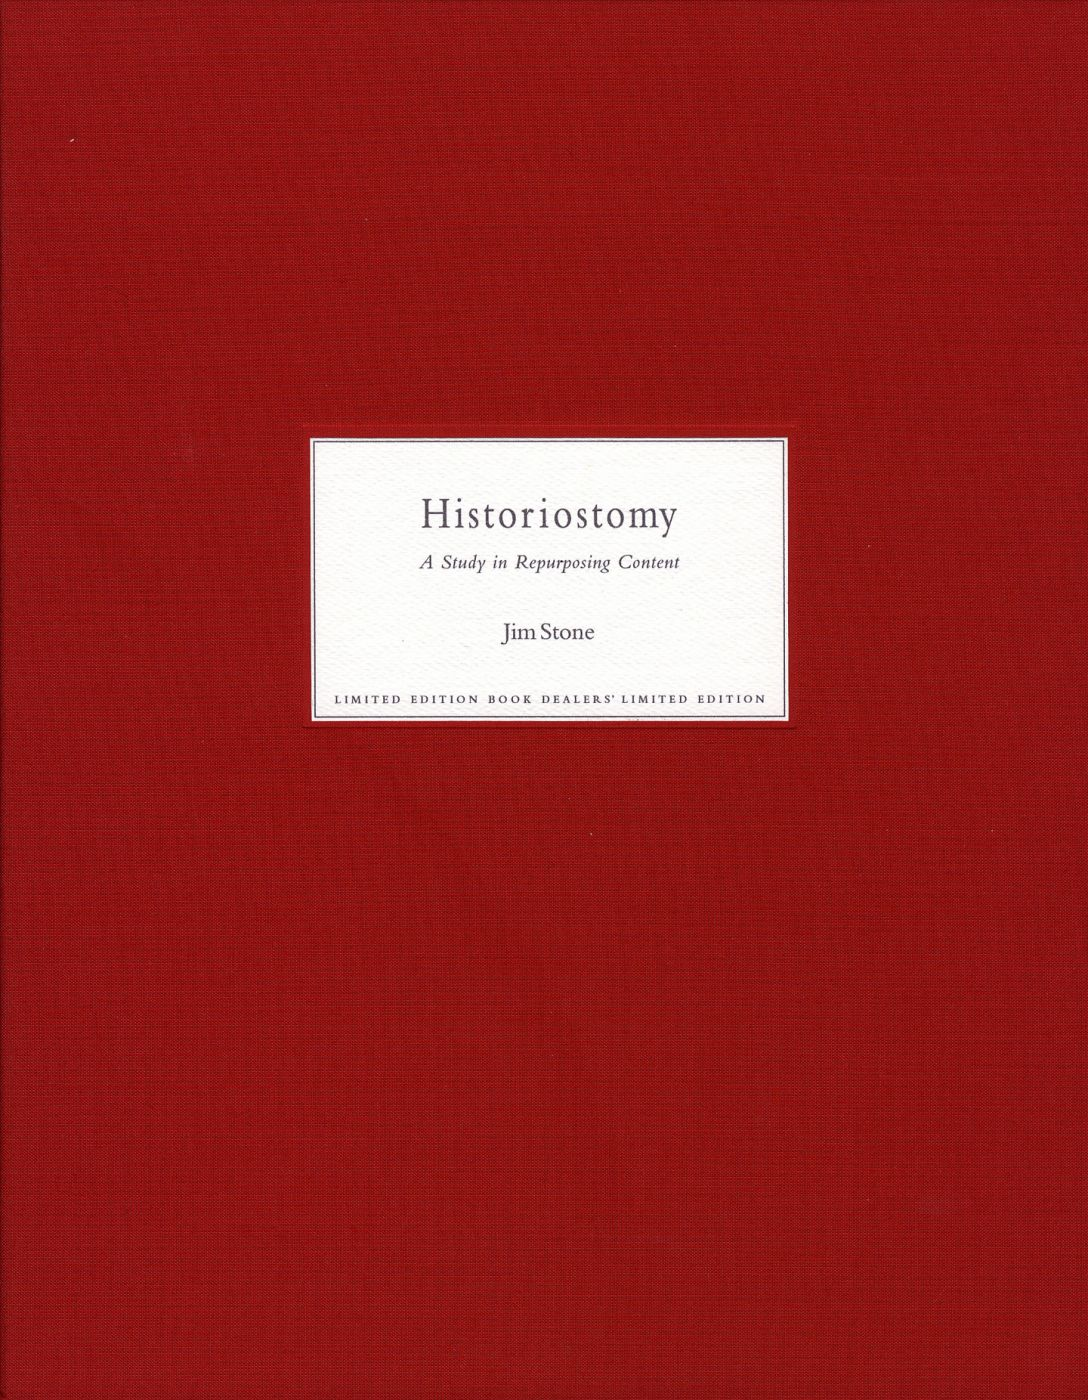 Jim Stone: Historiostomy: A Study in Repurposing Content, Limited Edition [SIGNED]